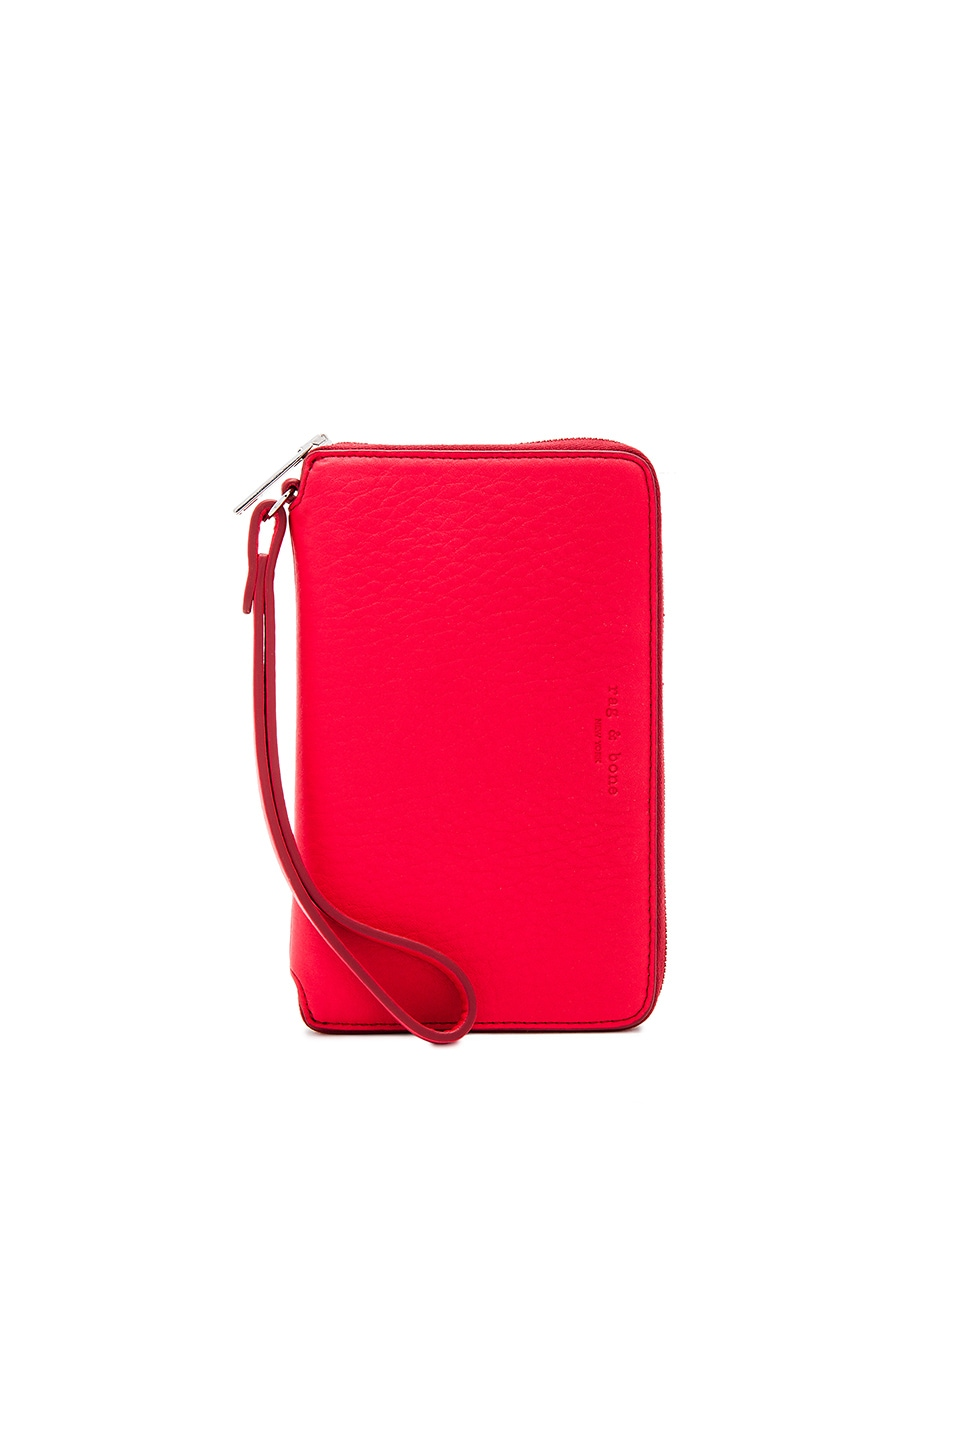 Rag & Bone Phone Wallet in Crimson